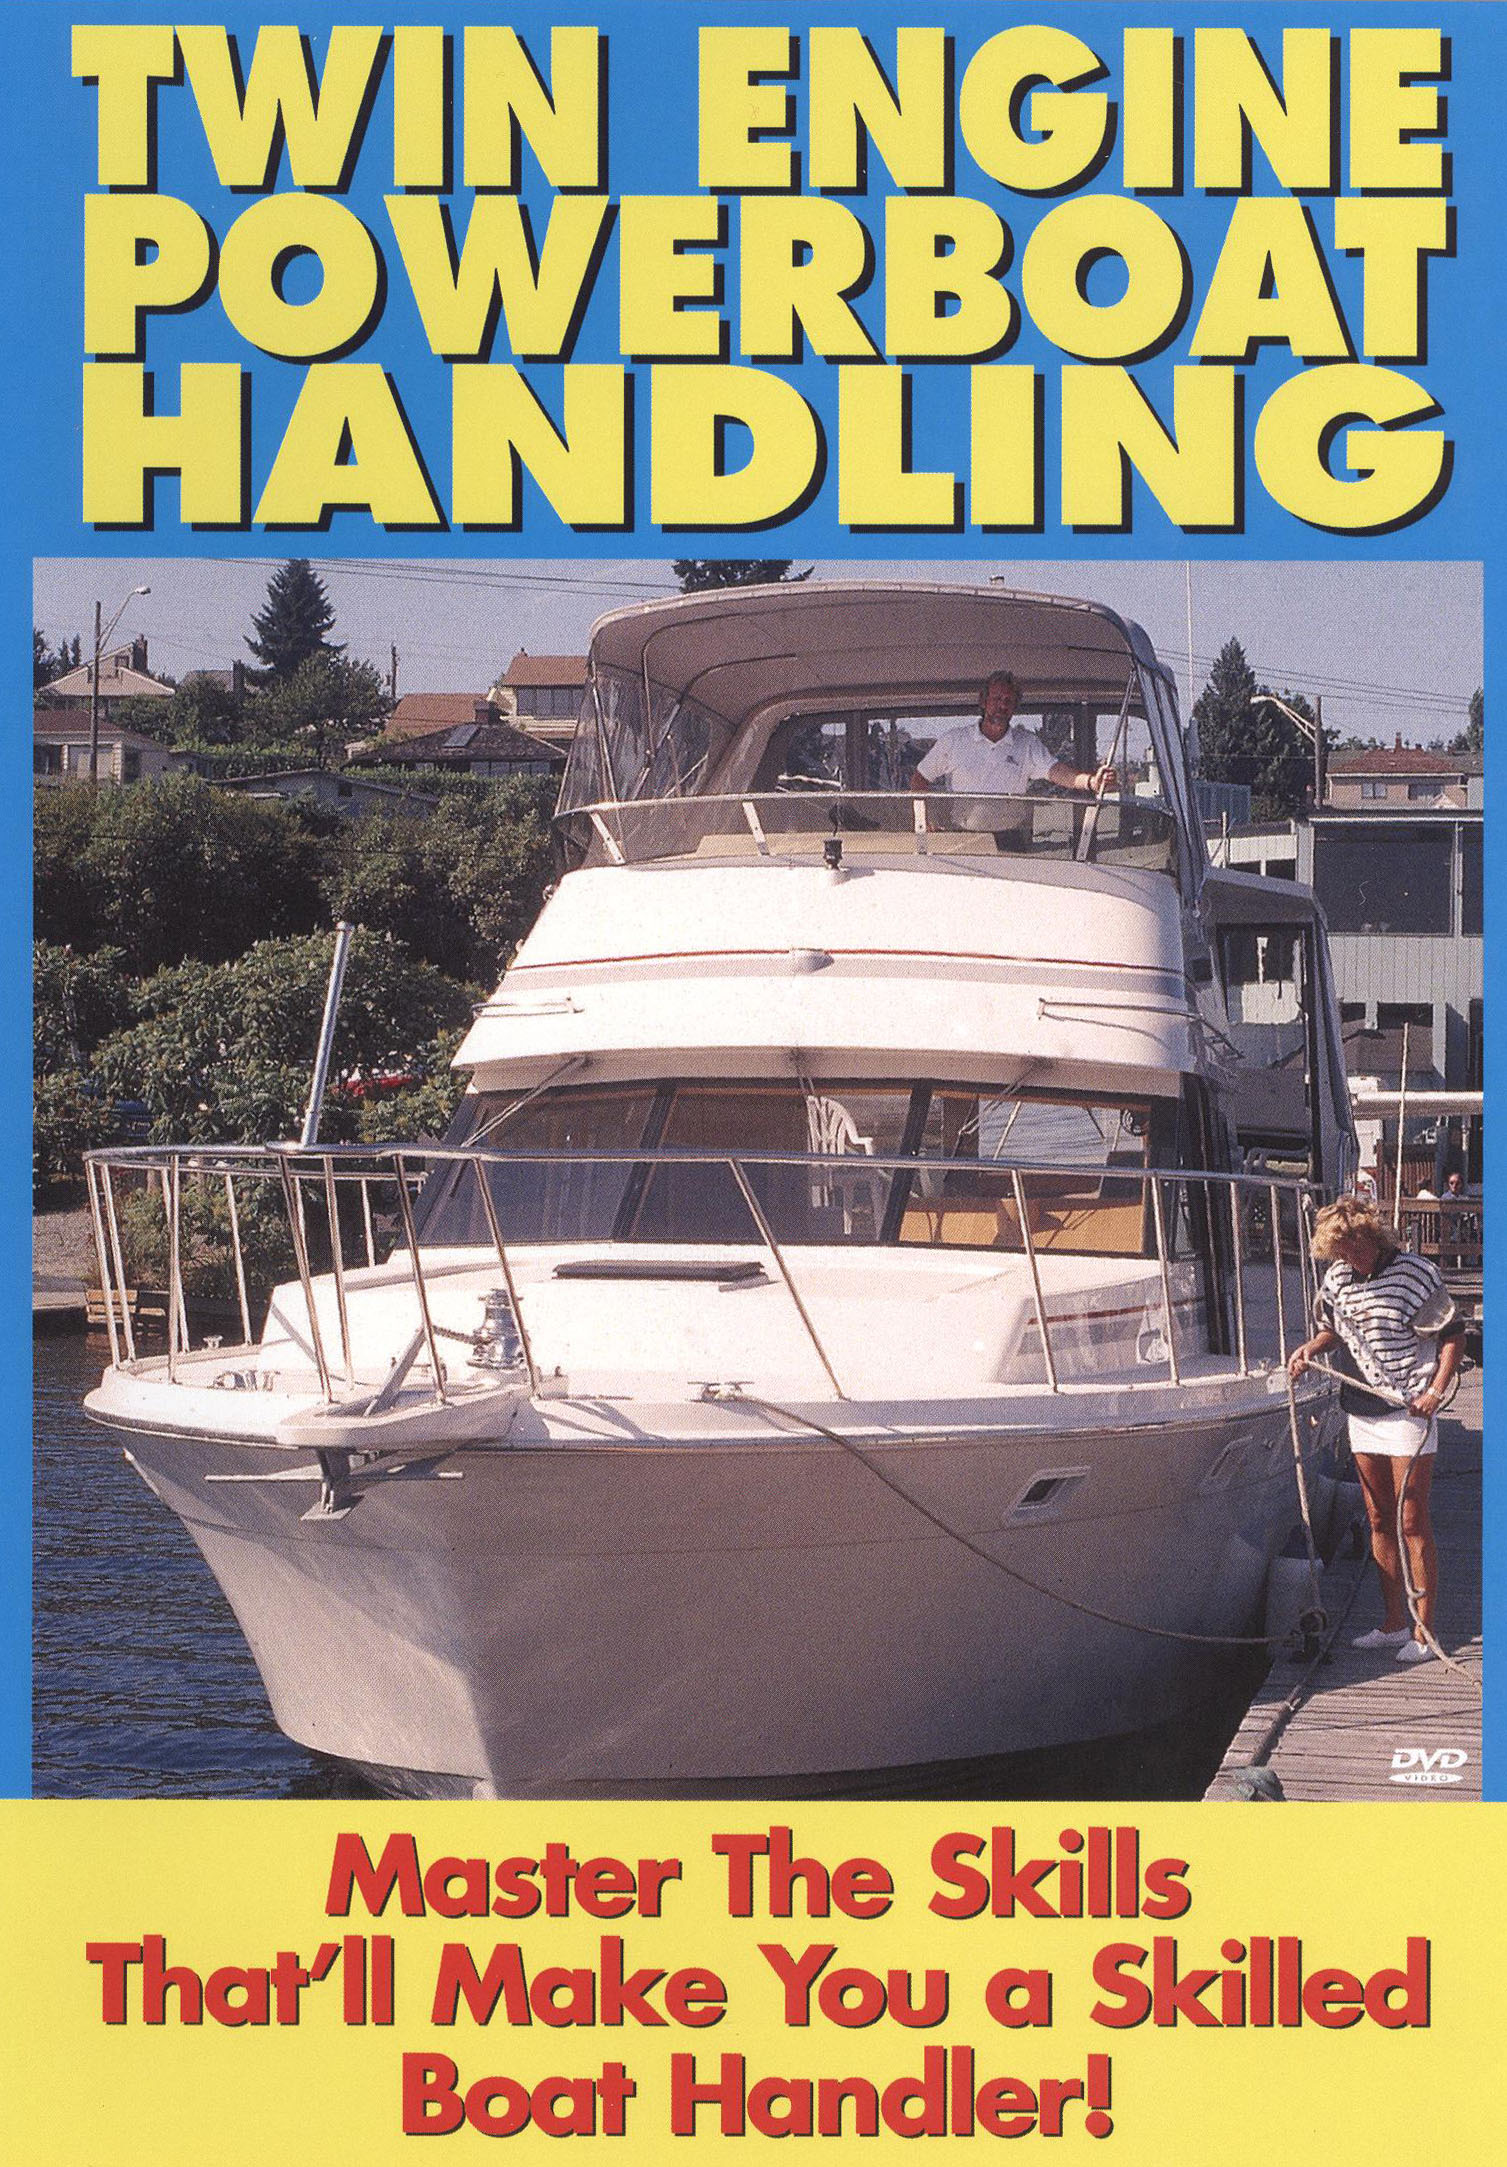 Twin Engine Power Boat Handling